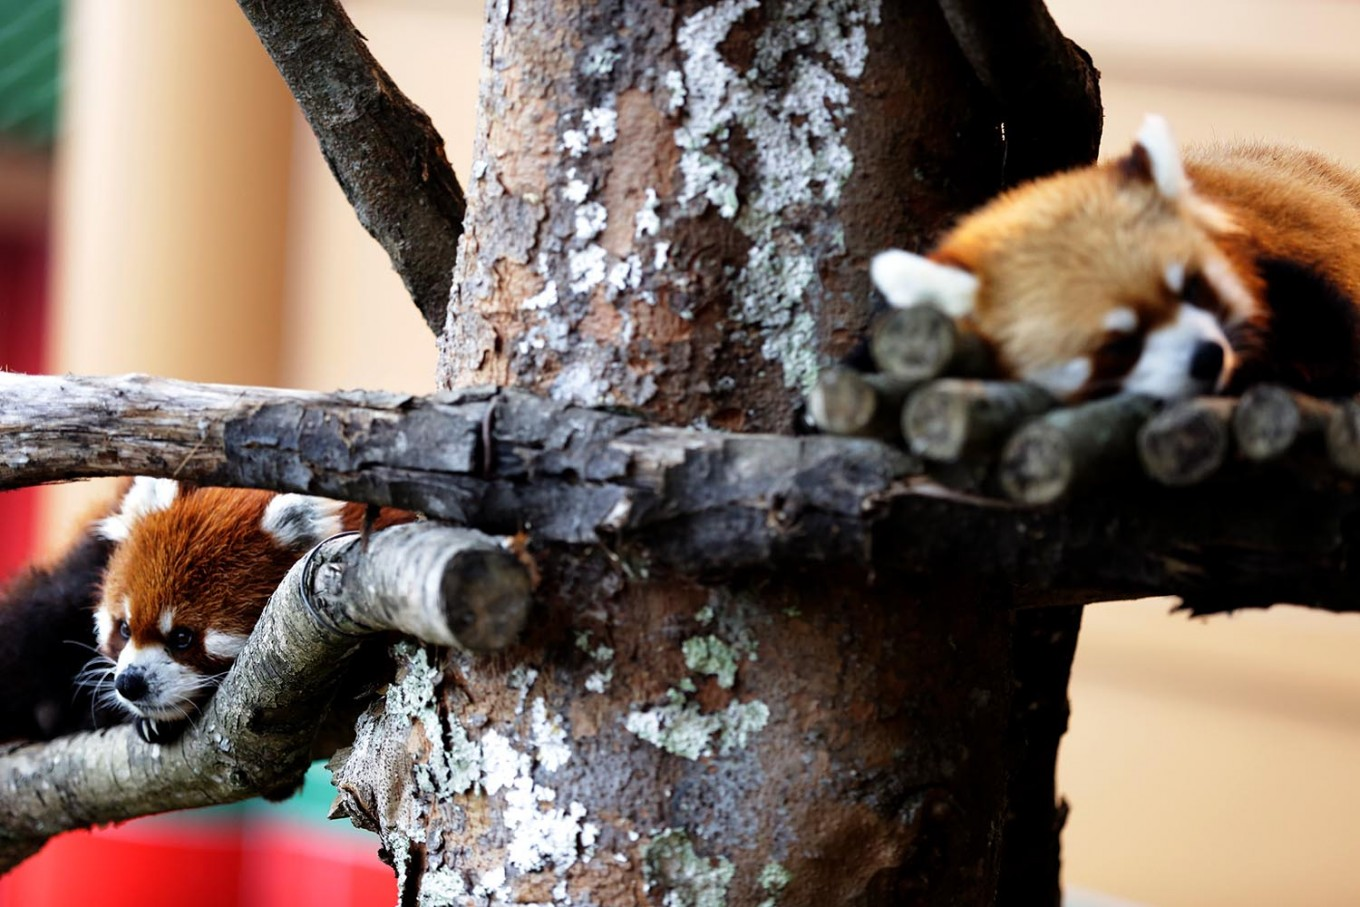 Taman Safari Indonesia welcomes new red panda cub